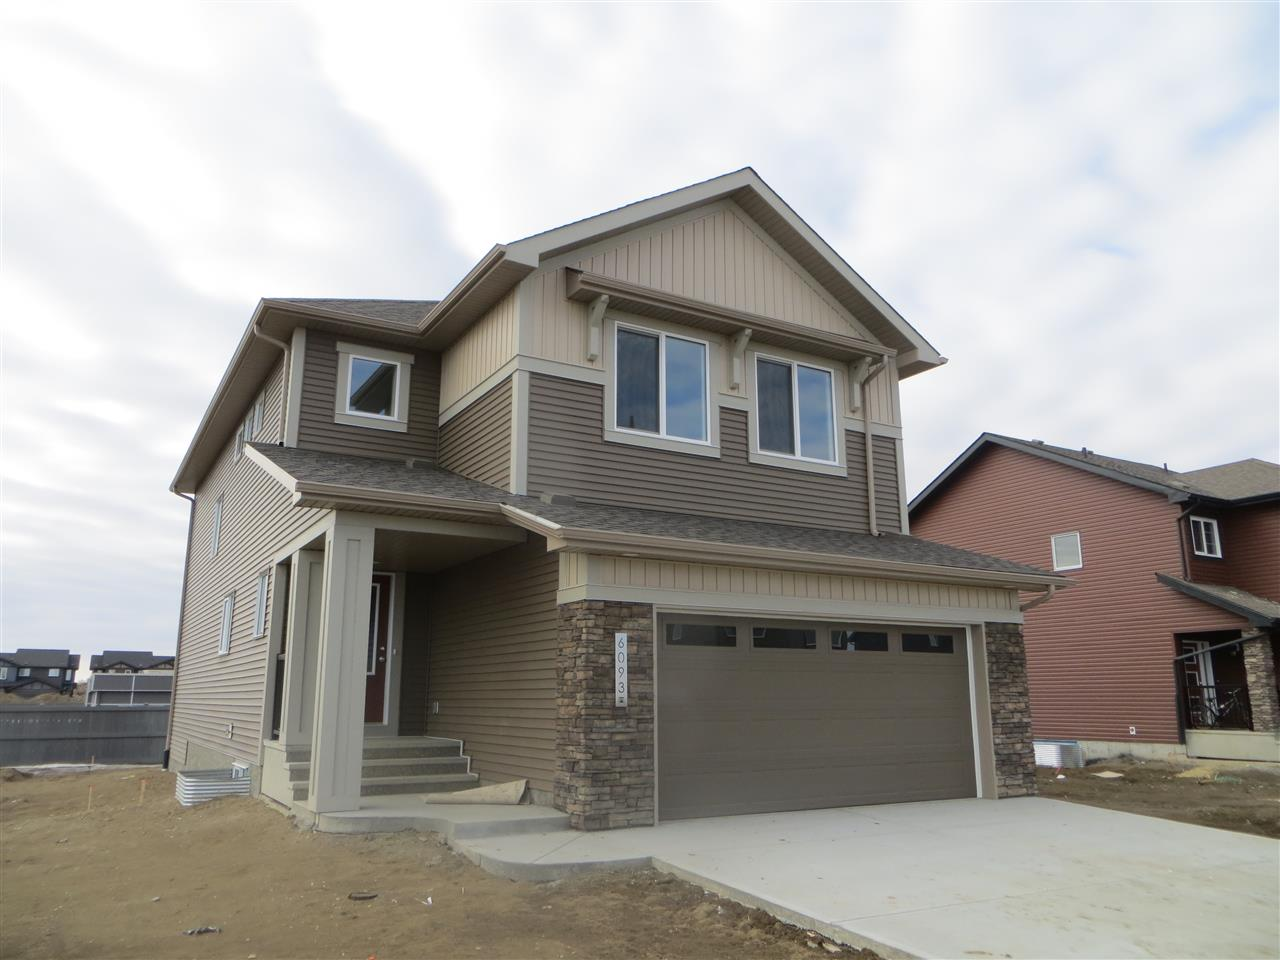 Brand new home, with over 2400 square feet and 4 bedrooms!  This home is ready for immediate possession and will be fully landscaped.  Open floorplan with 9 foot ceilings. Features and upgrades include: butler's pantry, island kitchen with granite counters, stainless steel appliances, laminate and tile flooring, eating area plus formal dining room, upstairs laundry, bonus room, master bedroom with walk in closet and 5 piece ensuite with glass shower, soaker tub and 2 sinks.  4 bedrooms upstairs include a 2nd bedroom with a walk in closet.  Bonus room is spacious with lots of wall space to organize your furniture. 10 year new home warranty so no need to worry.   Built Green specifications to lower your utility bills. Located in popular Arbours of Keswick!